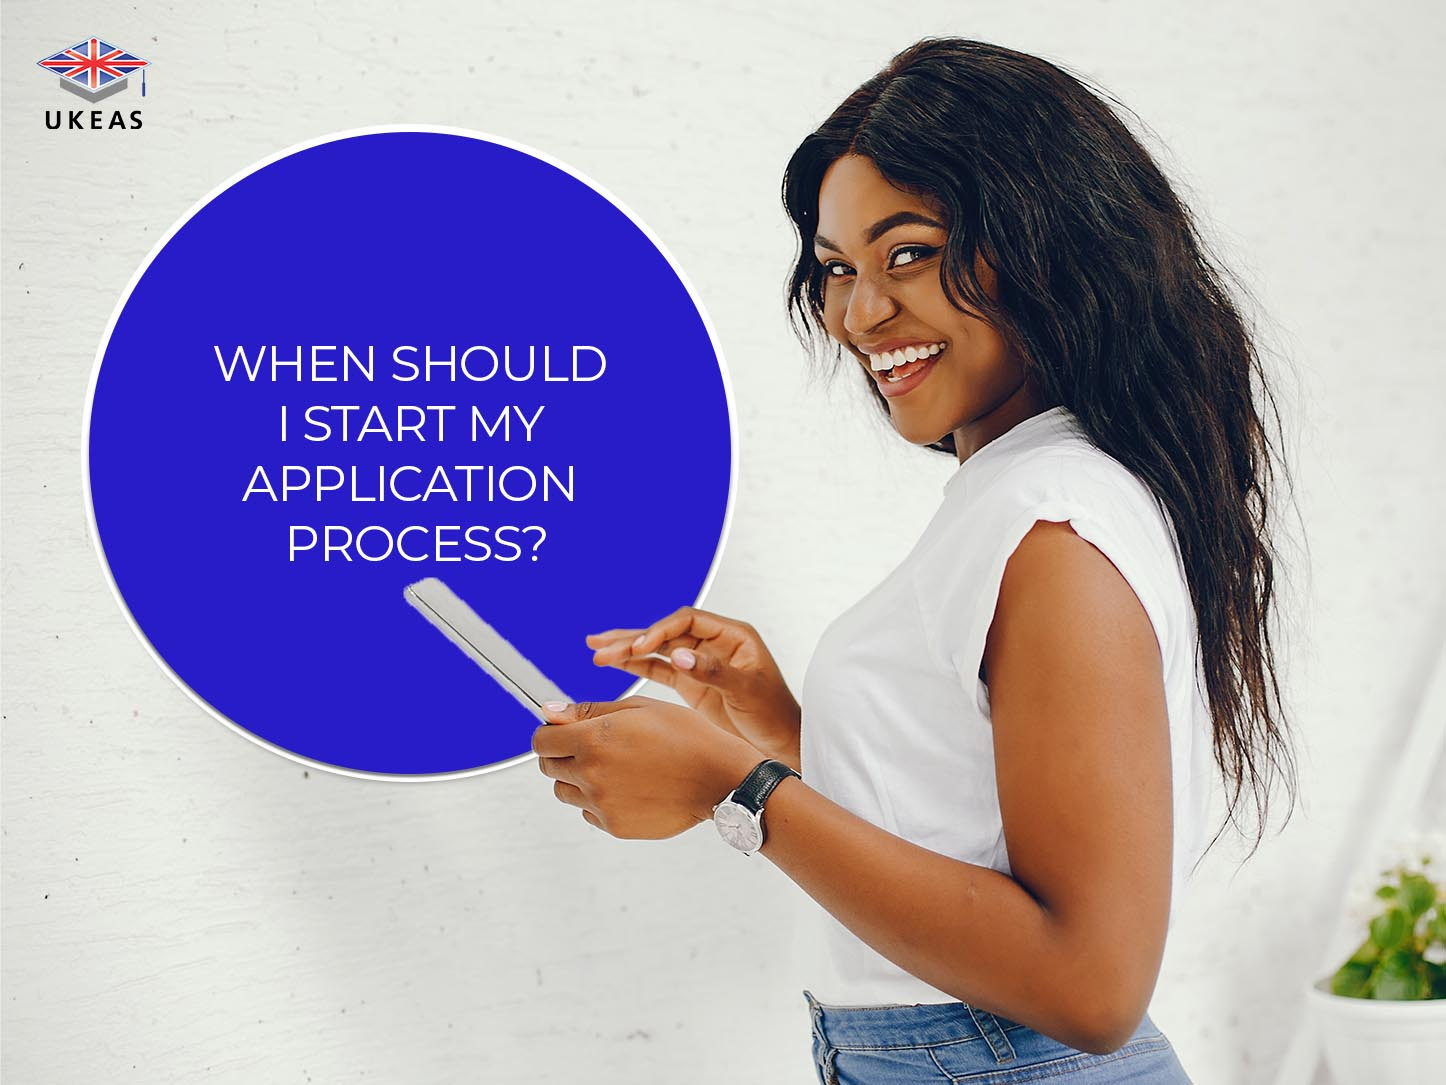 When Should I Start My Application Process?